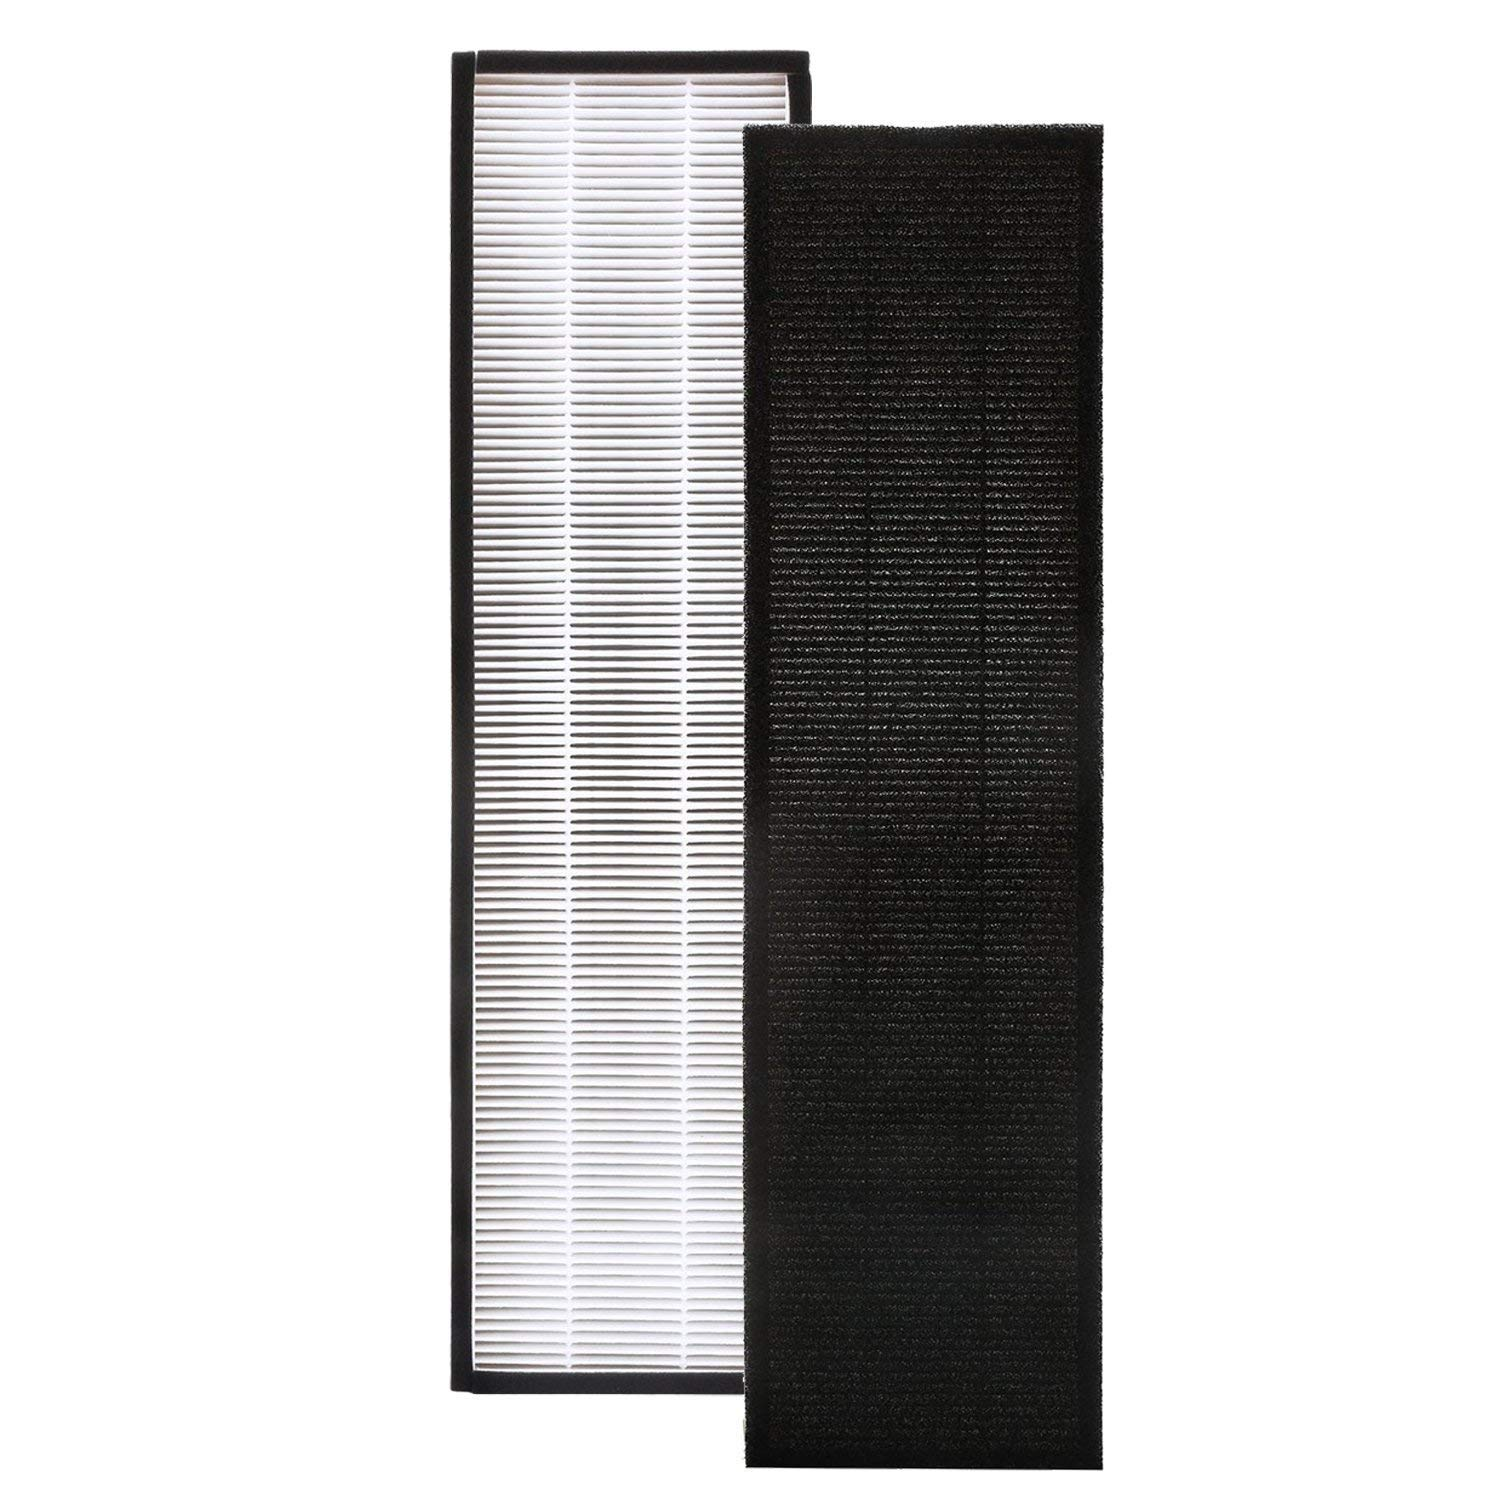 isinlive True HEPA Filter C Compatible with Germ Guardian AC5000 Series Air Purifiers